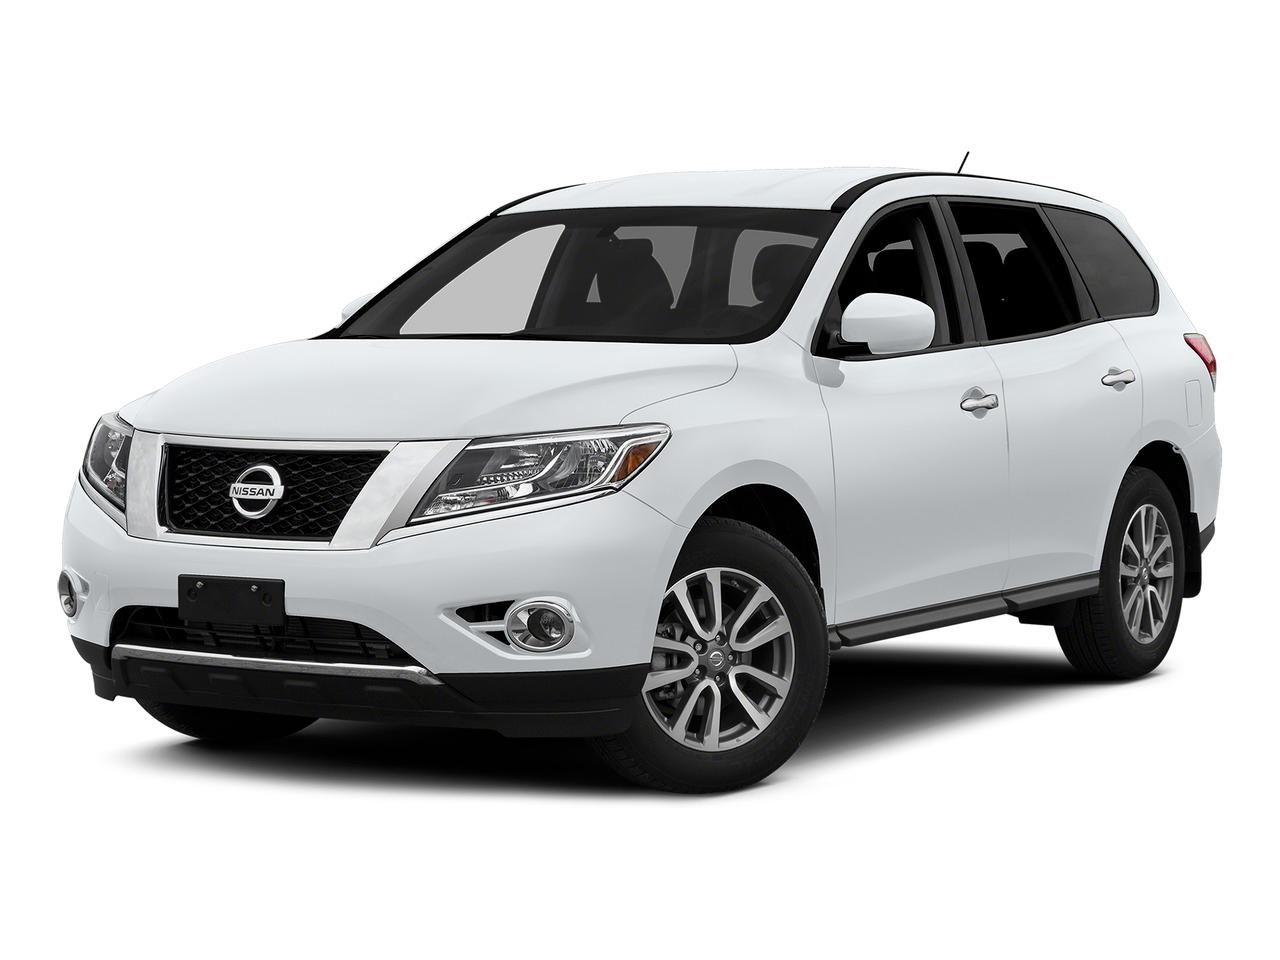 2015 Nissan Pathfinder Vehicle Photo in Westlake, OH 44145